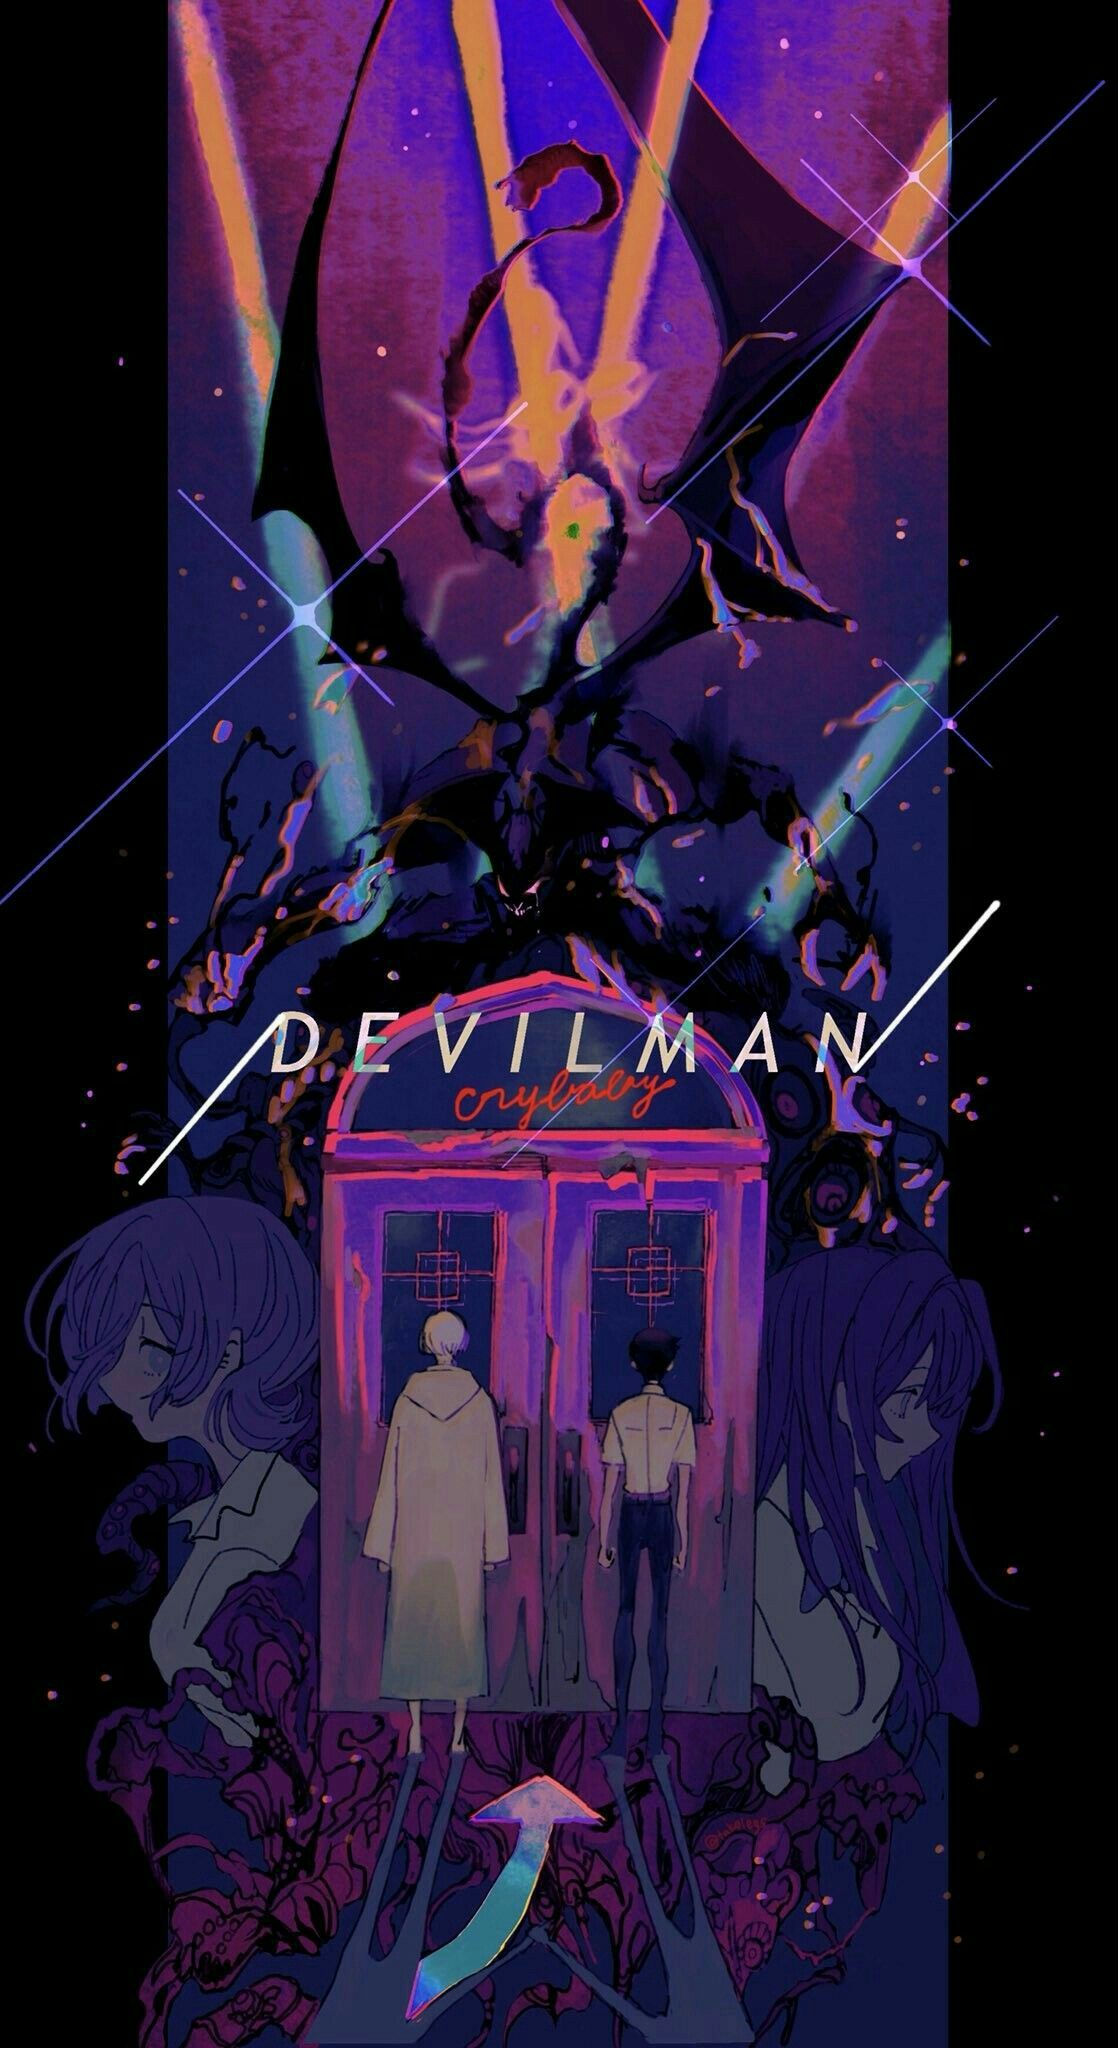 Pin By Emi Naomi On Devilman Crybaby Anime Wall Art Devilman Crybaby Anime Wallpaper